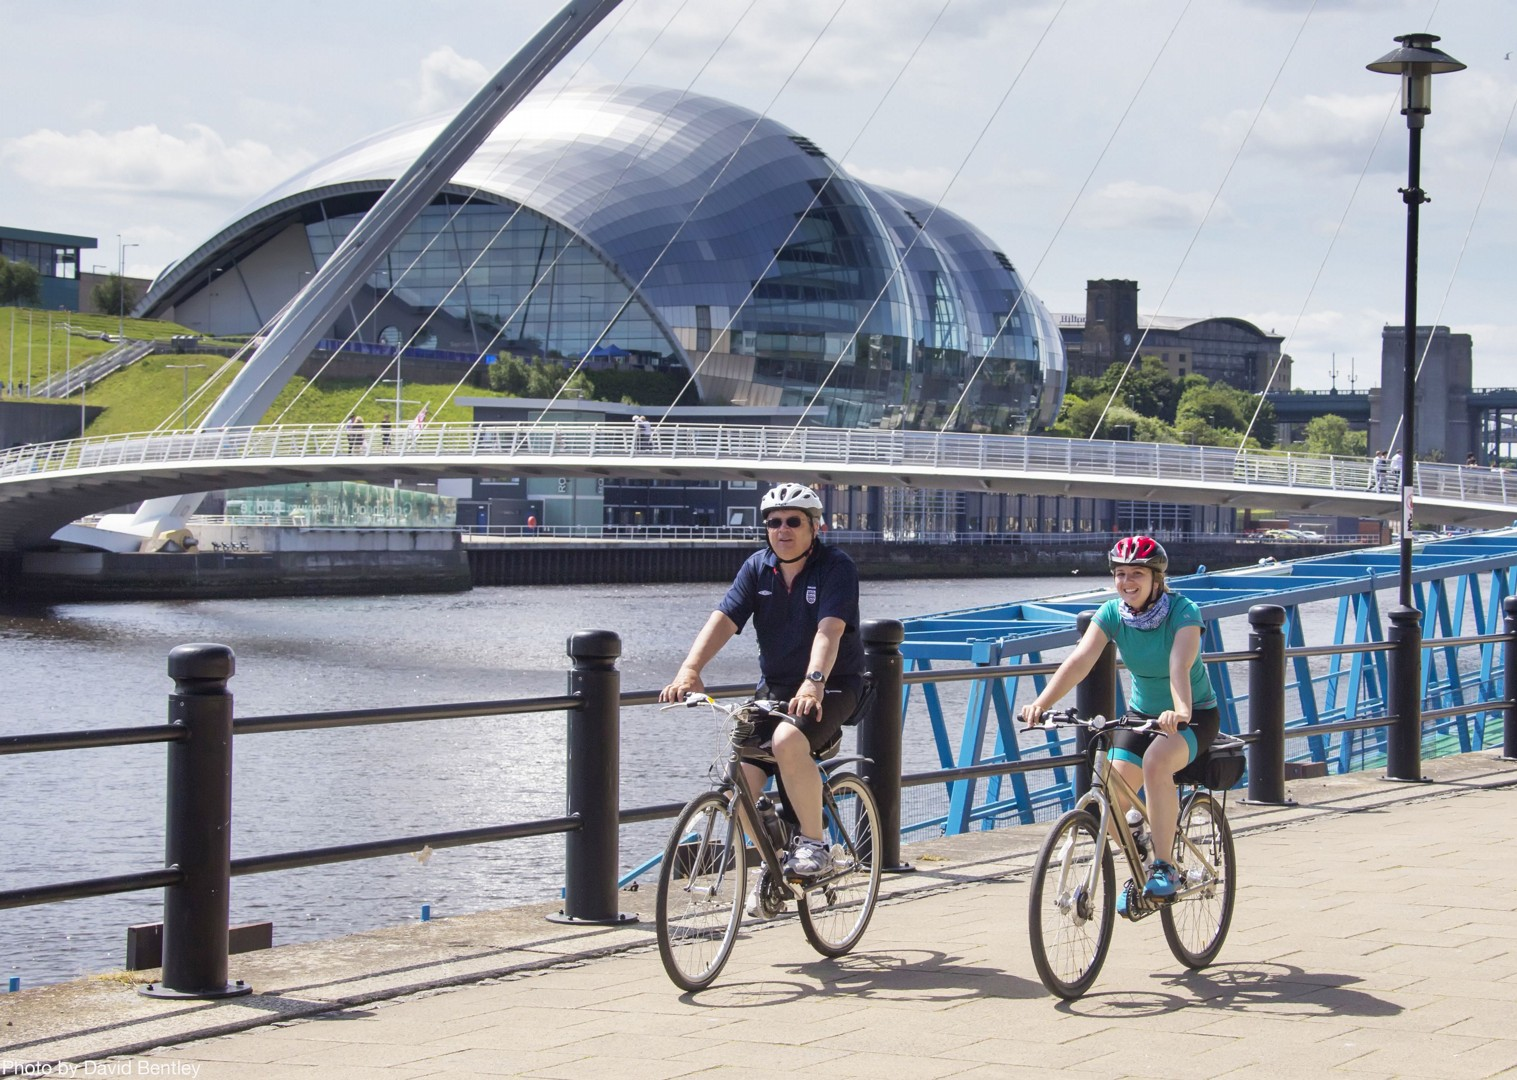 hadrians-cycleway-self-guided-family-trip-newcastle-quayside-millenium-bridge.jpg - UK - Hadrian's Cycleway - 4 Days Cycling - Self-Guided Family Cycling Holiday - Family Cycling